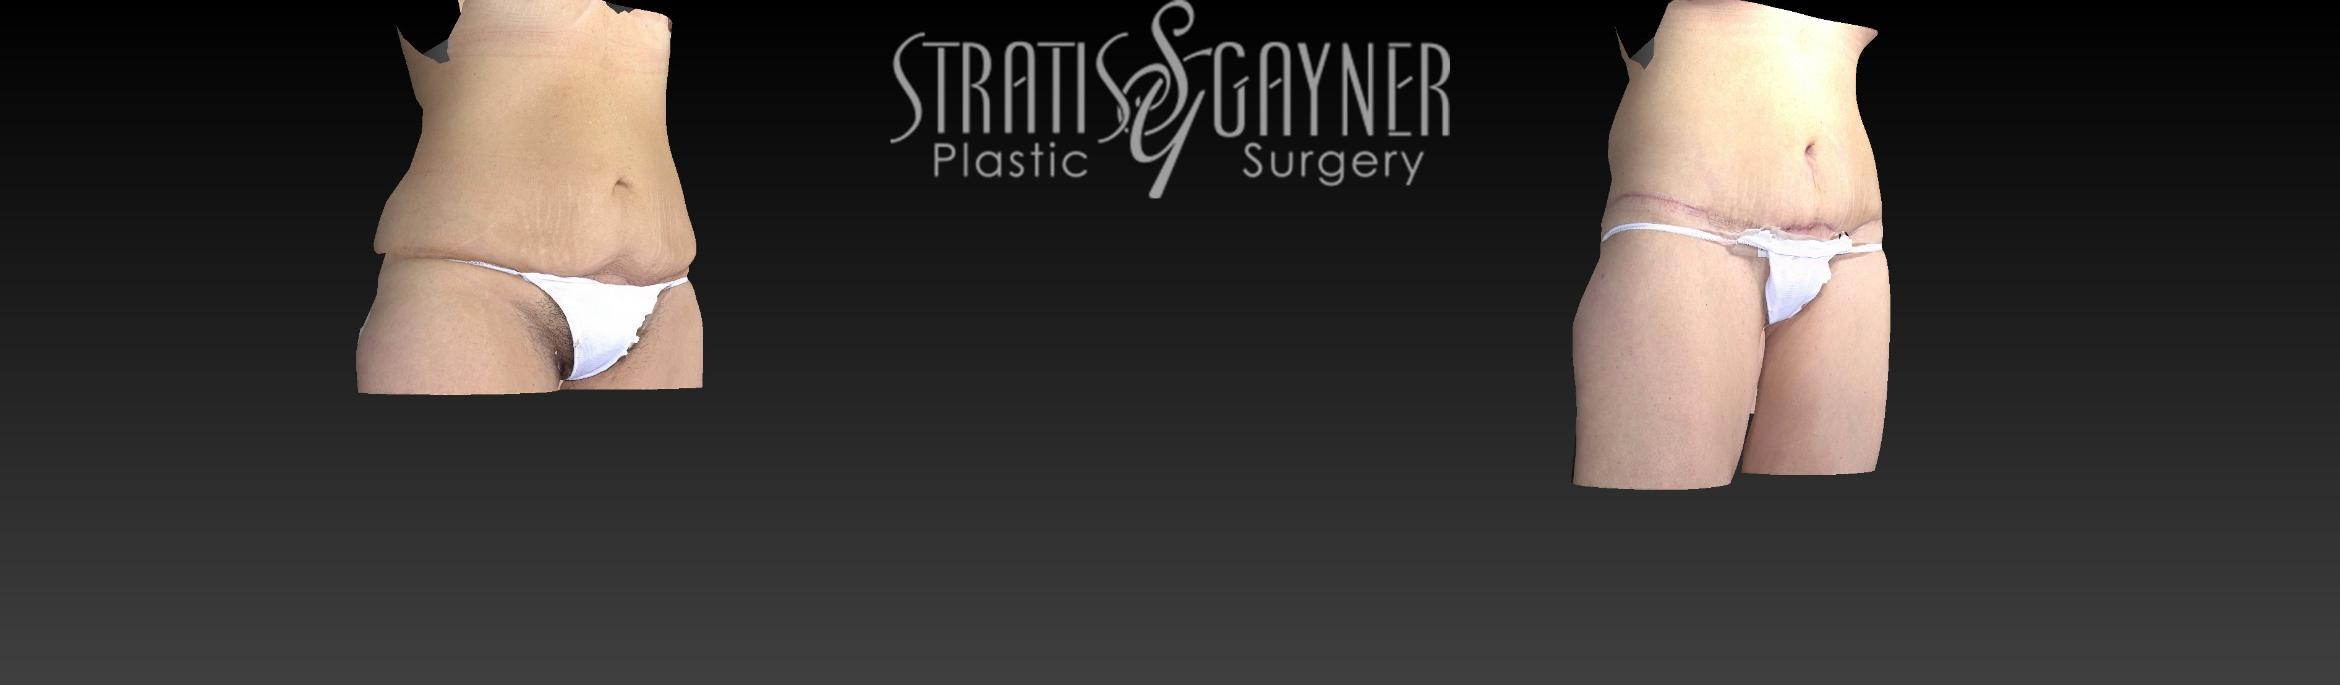 Body Lift Case 159 Before & After View #2 | Harrisburg, PA | Stratis Gayner Plastic Surgery